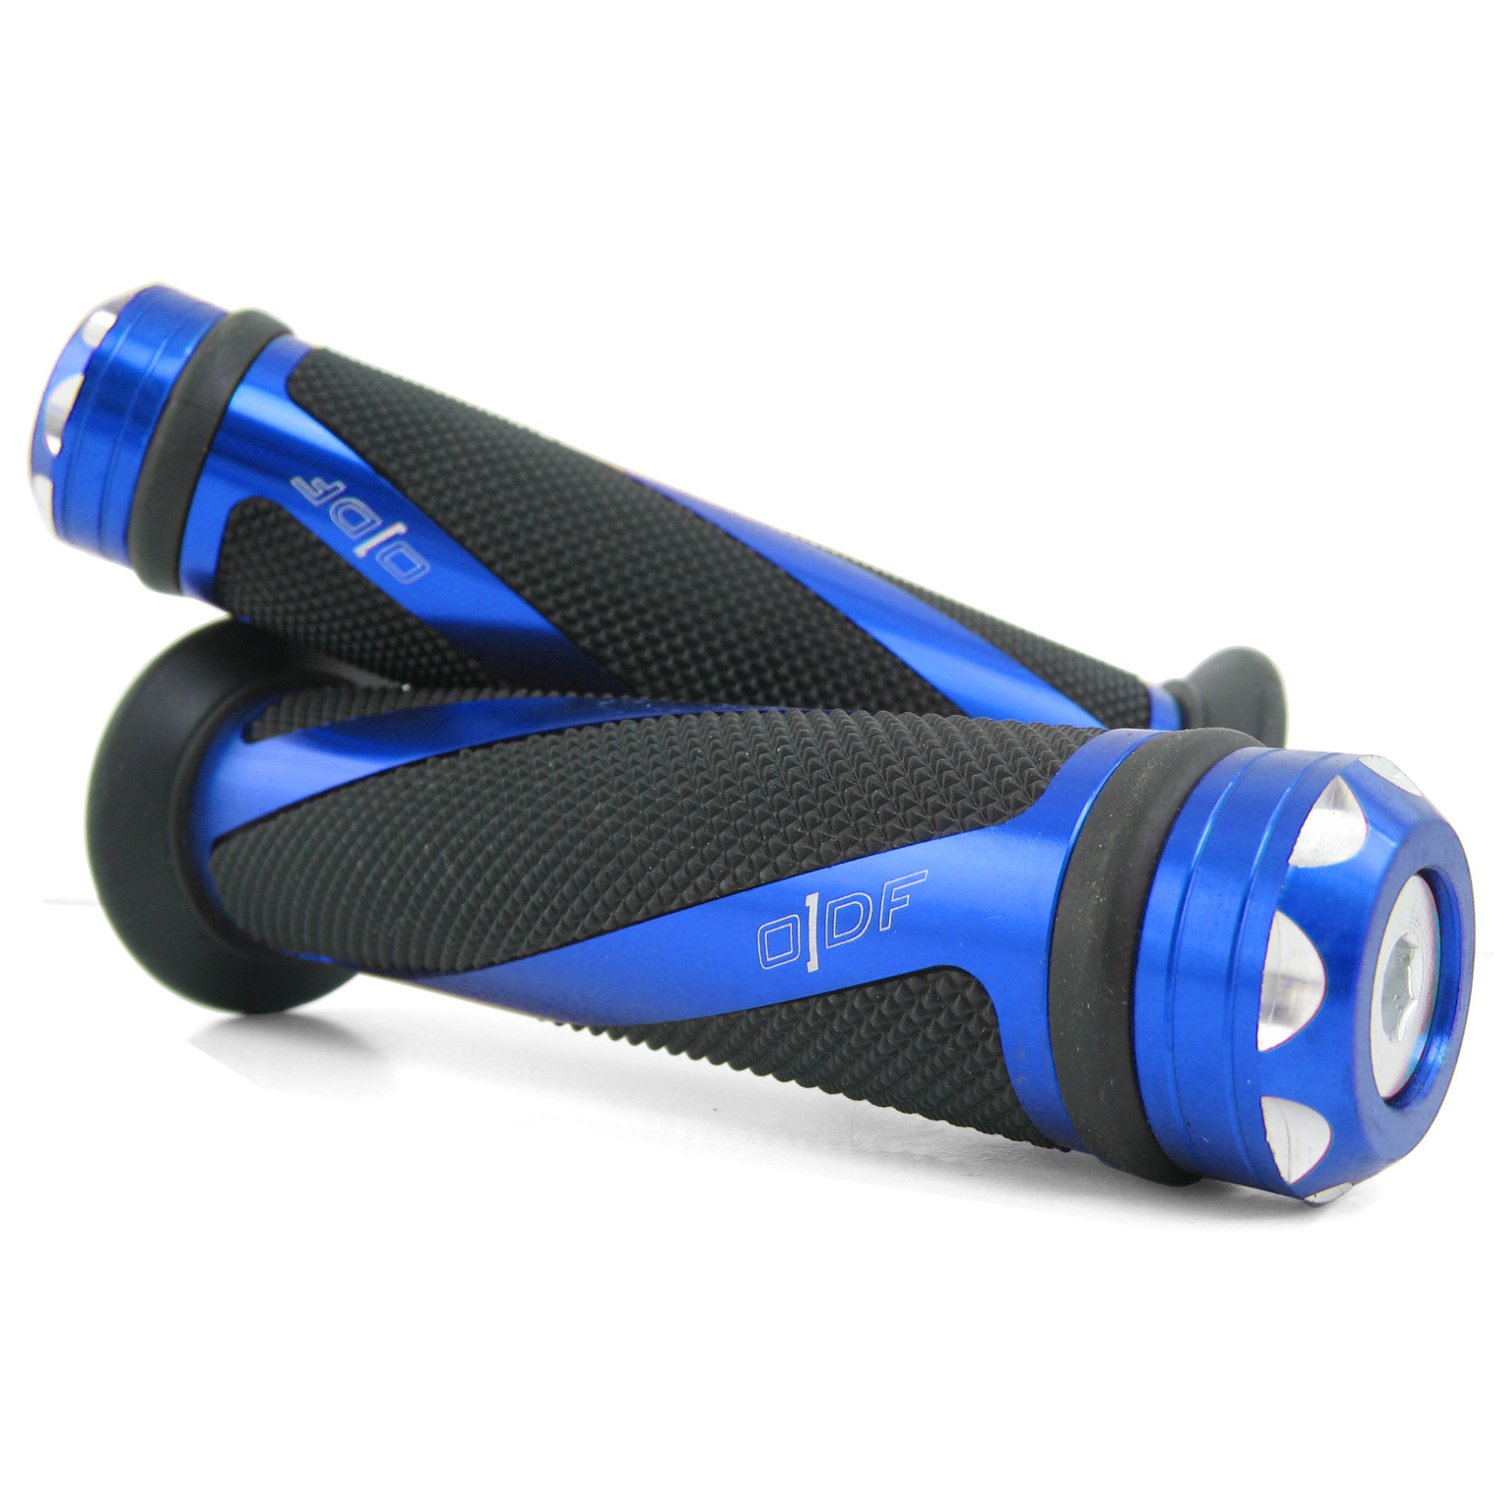 Manopole MBK Nitro Mach G Booster Tryptic Stunt Ovetto Coil//Blau